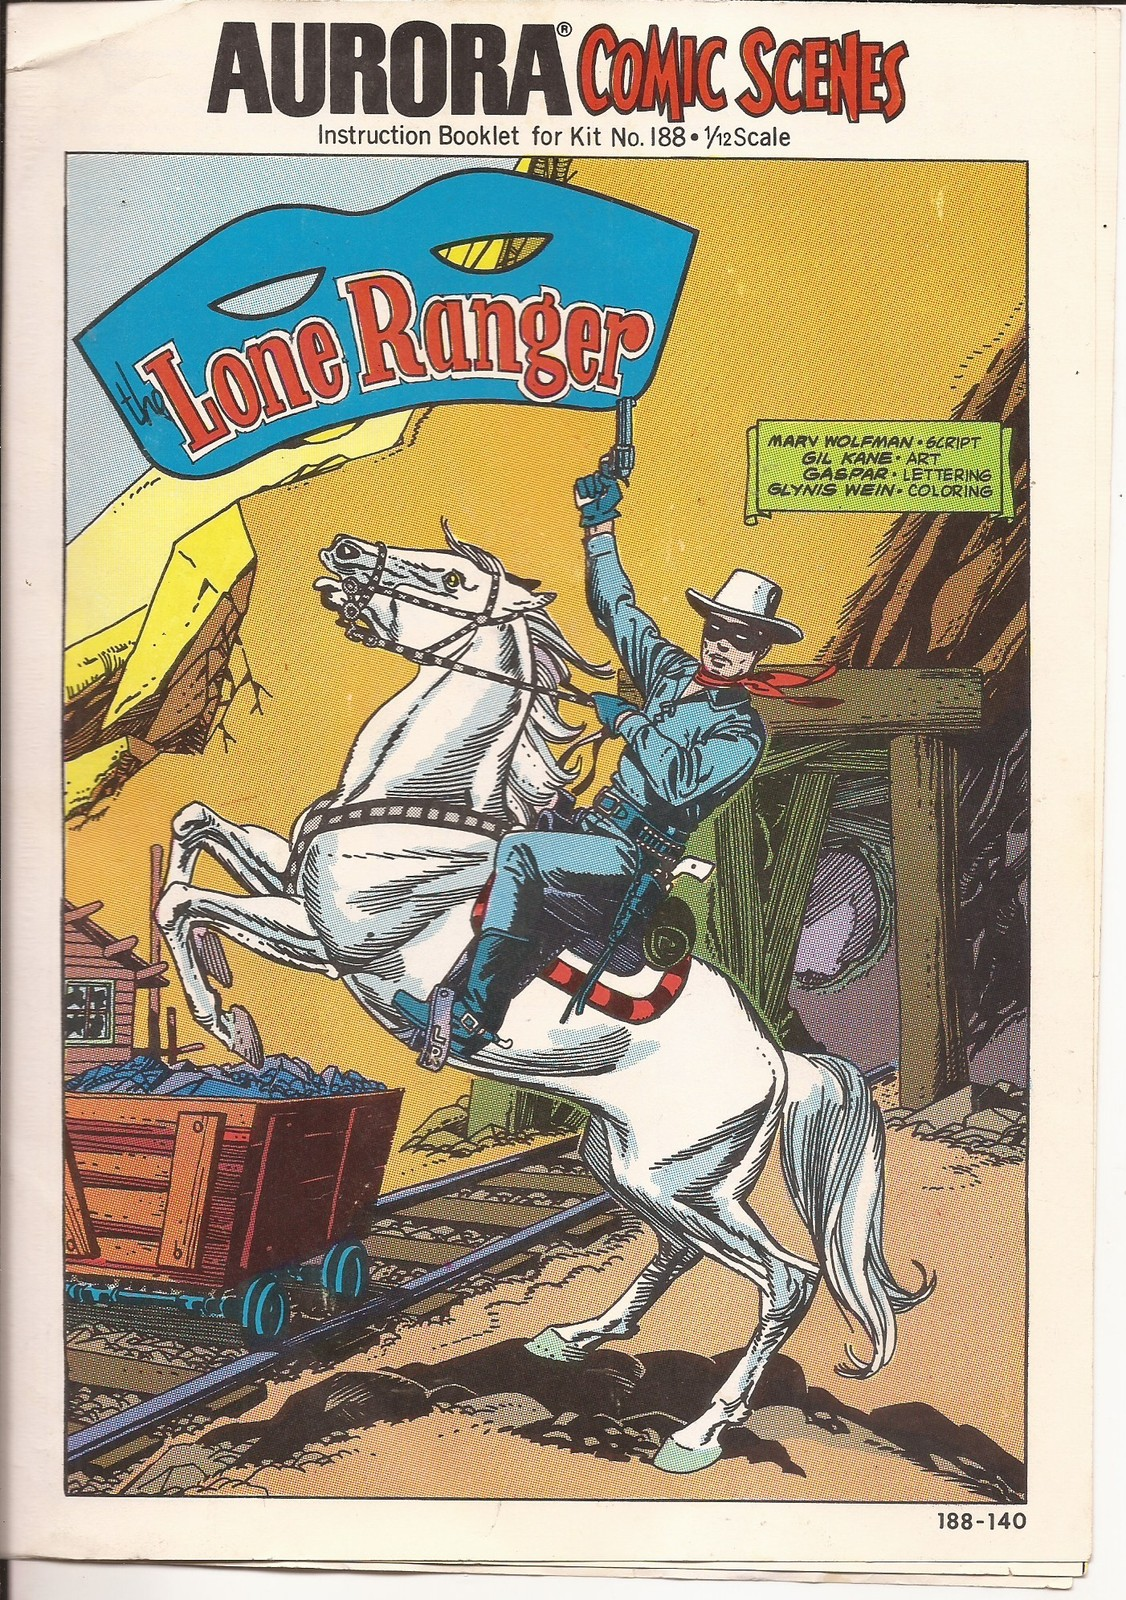 Primary image for Aurora Comic Scenes Lone Ranger Instruction Booklet Only for Kit #188